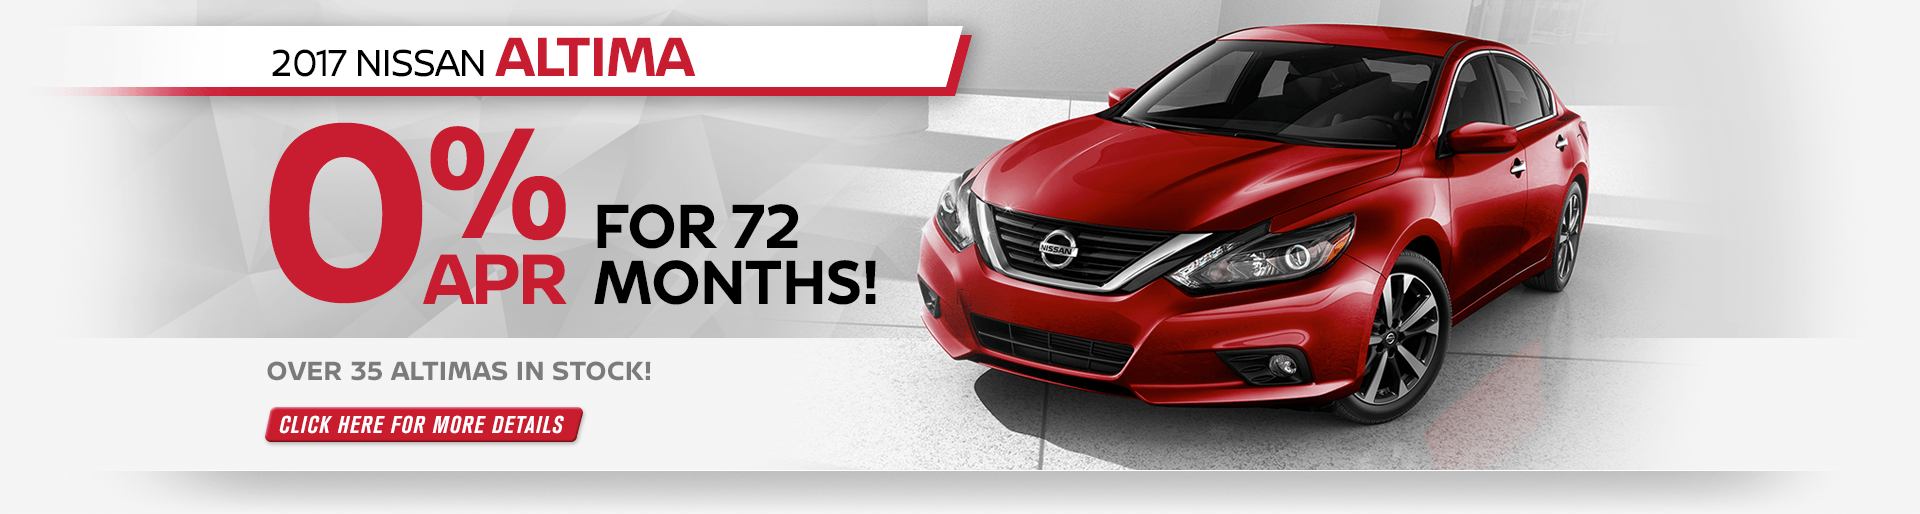 purchase a new nissan altima with 0 apr for 72 months at passport nissan md passport nissan blog. Black Bedroom Furniture Sets. Home Design Ideas